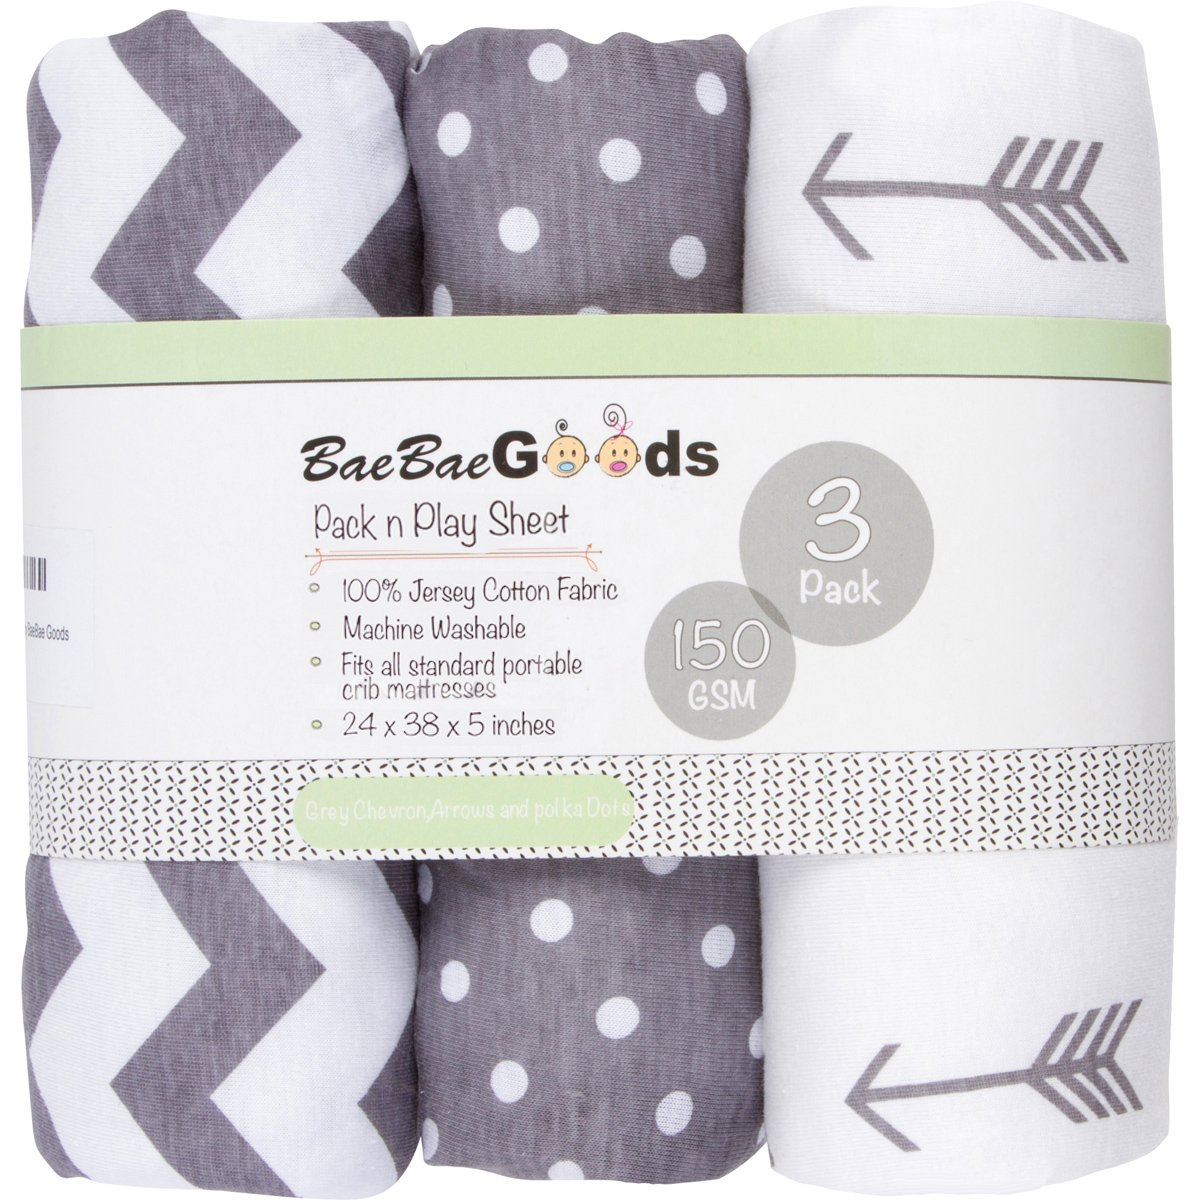 BaeBae Goods Jersey Cotton Fitted Pack n Play Playard Portable Crib Sheets Set | Grey and White | 150 GSM | 100% Cotton | 3 Pack BaeBae & Company